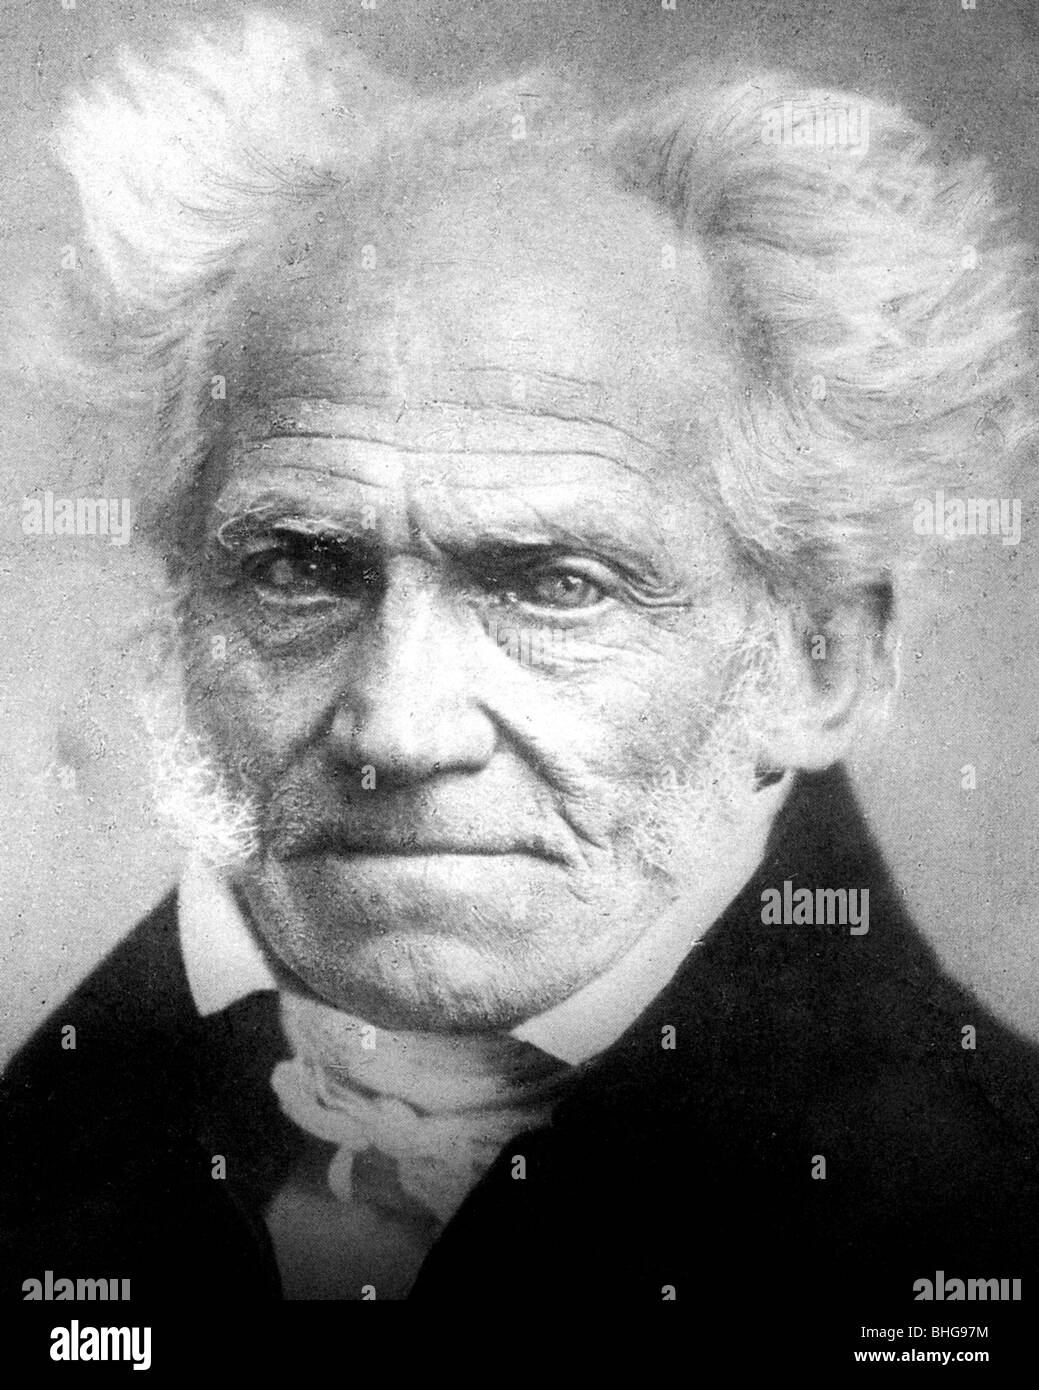 ARTHUR SCHOPENHAUER - German philosopher (1788-1860 Stock